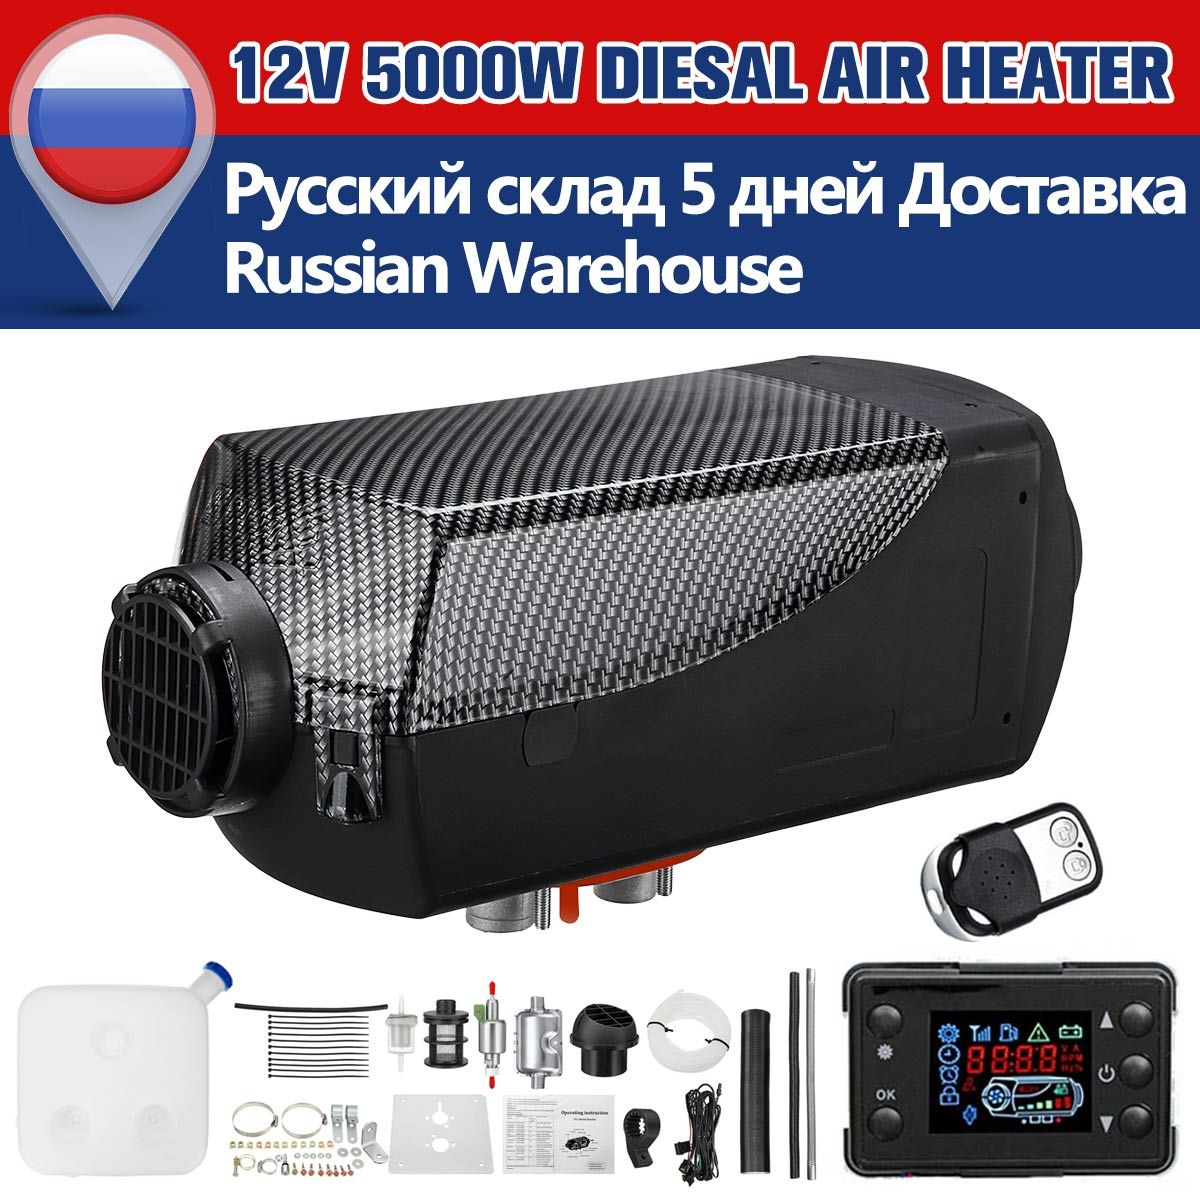 Air Diesel/Heater 5KW 12V Planar LCD For Car Trucks Boats Motor-Homes Latest Kit Monitor for RV Motorhome Trailer With Remote